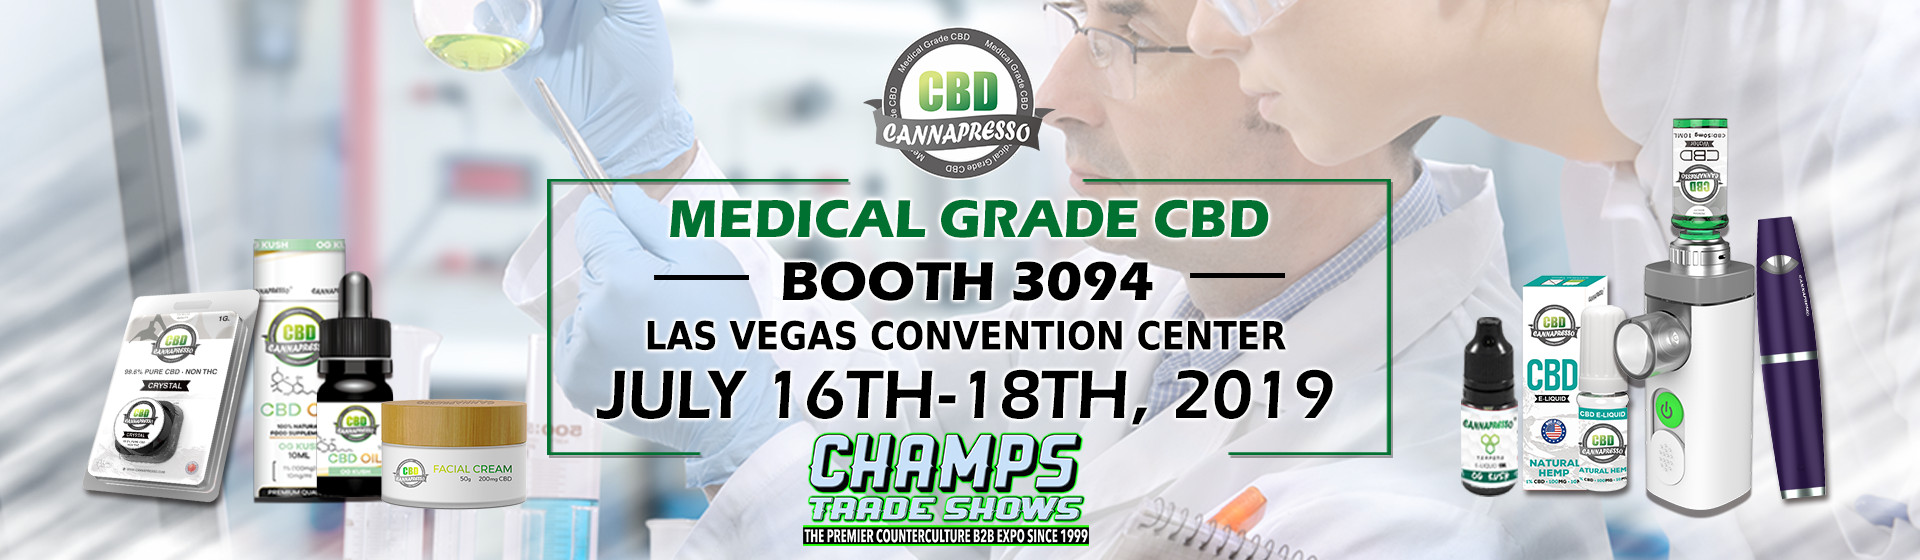 champs trade show 2019 cannapresso cbd